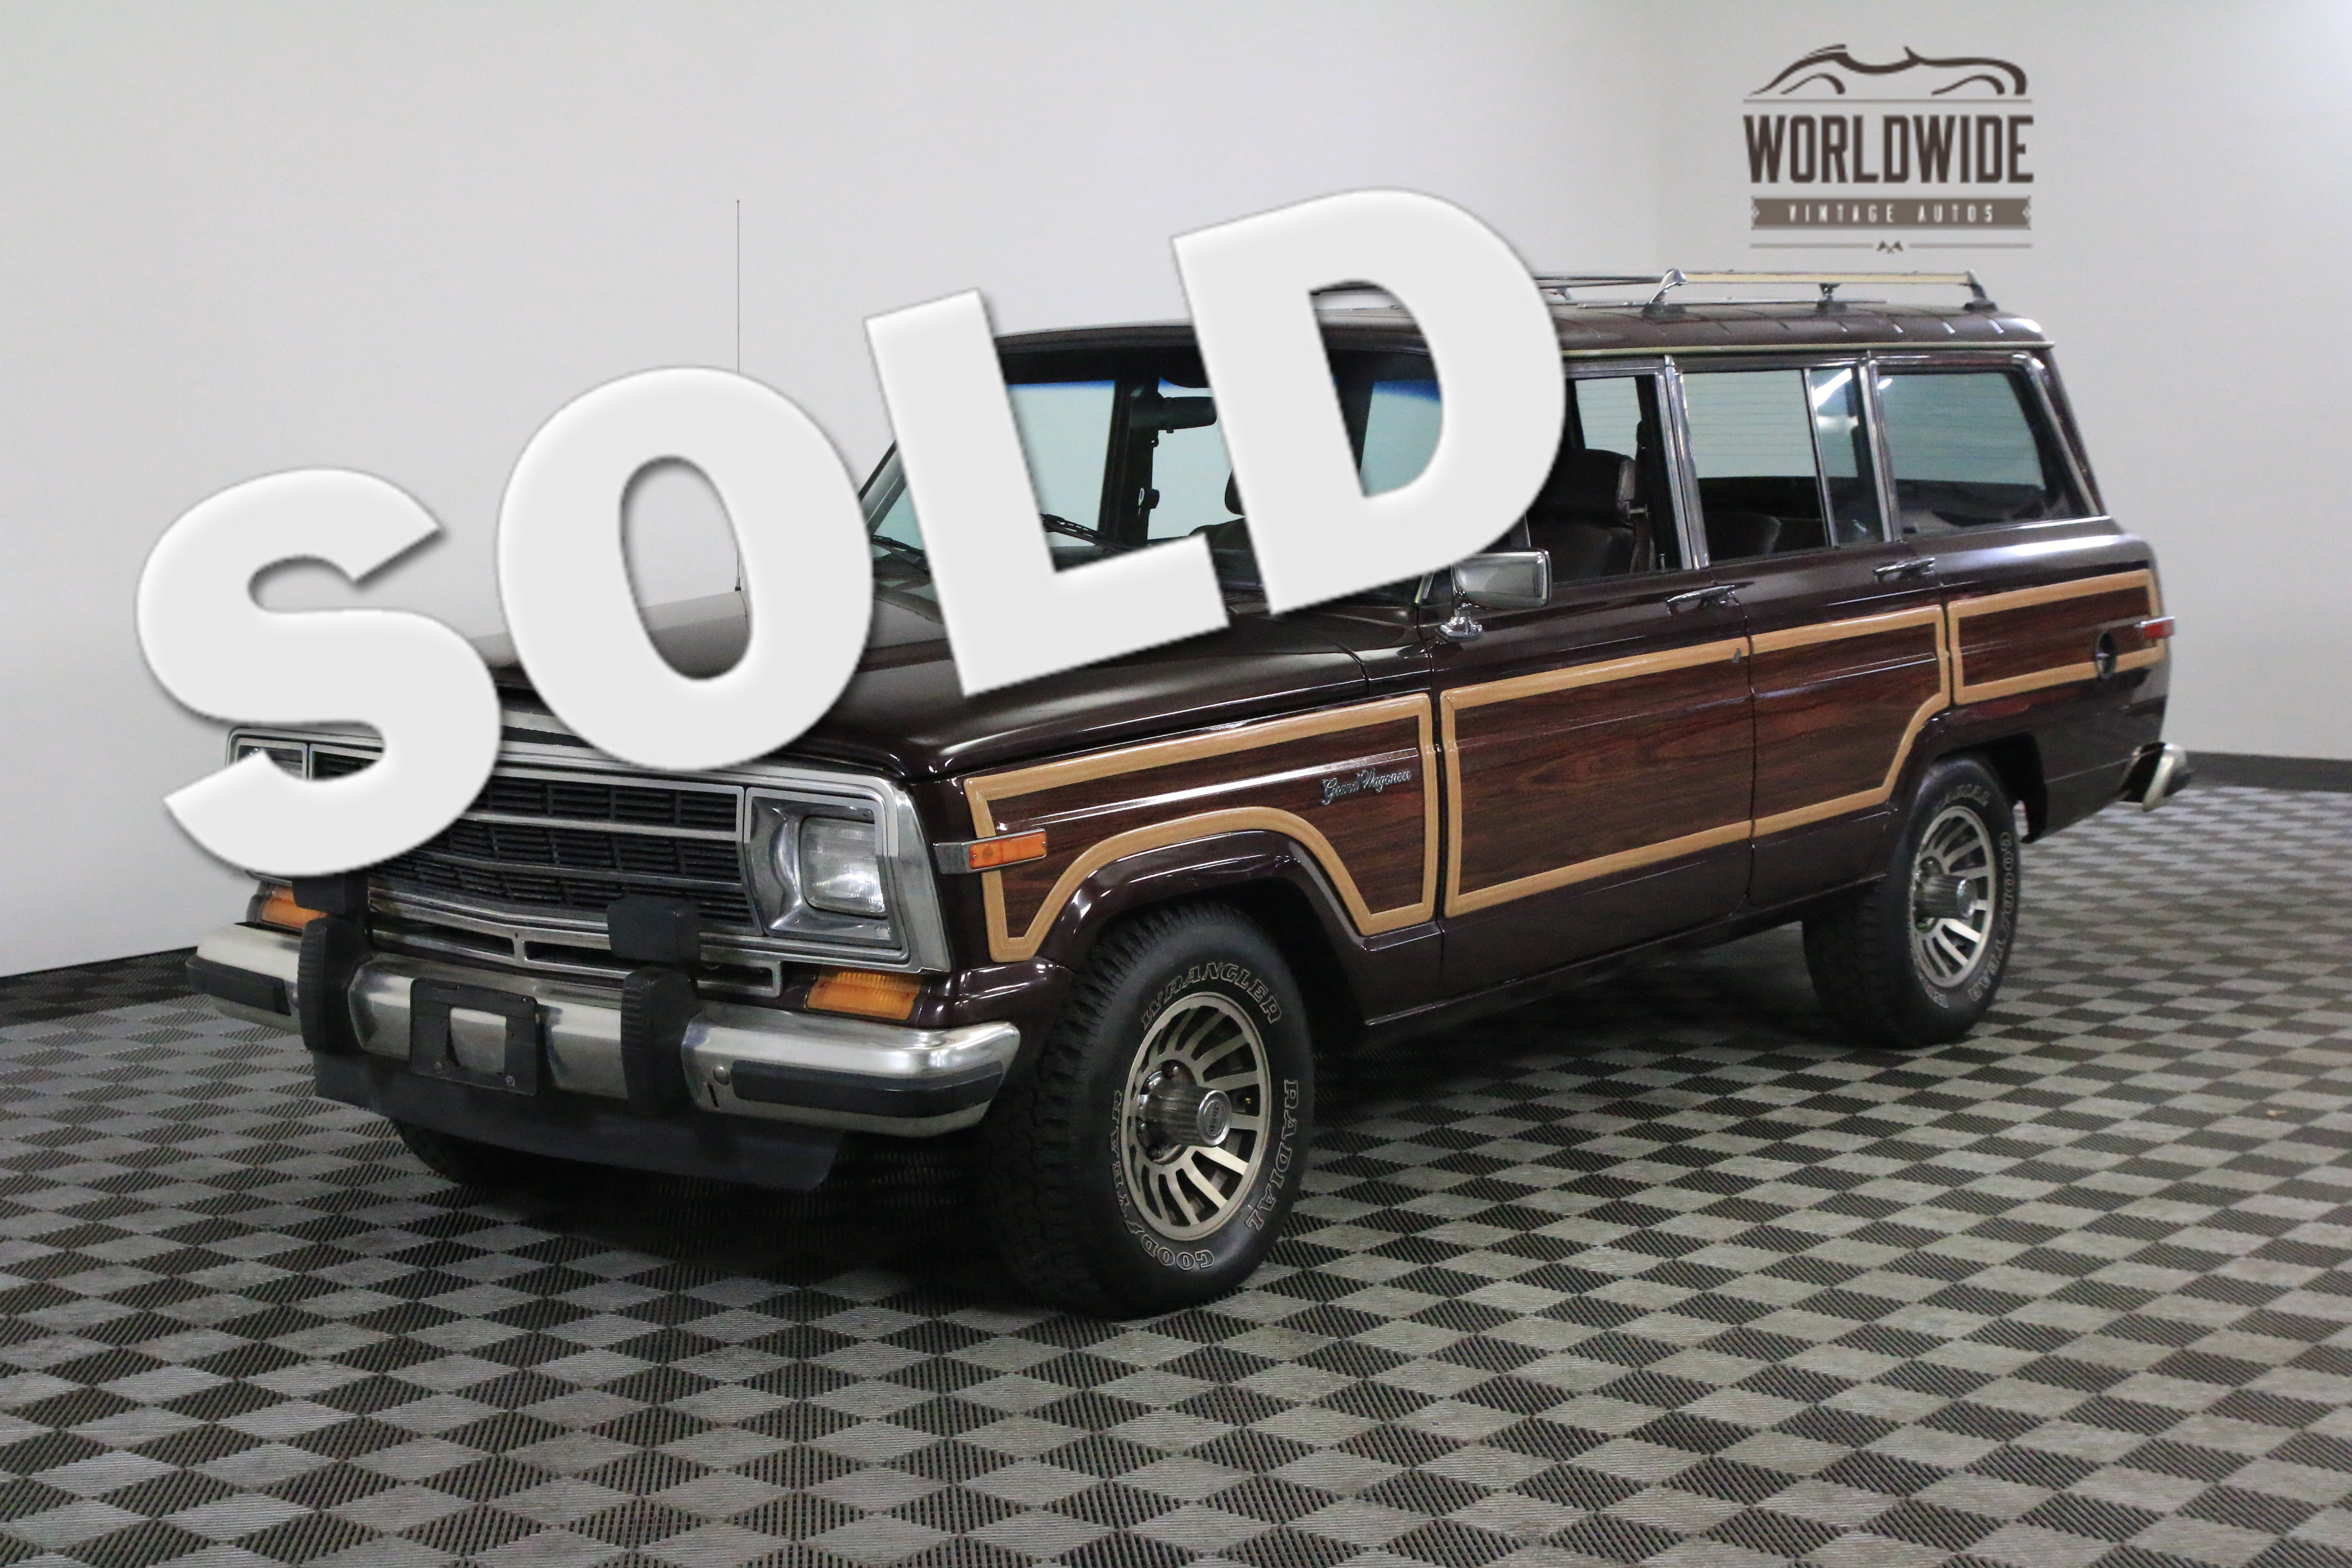 1989 Jeep GRAND WAGONEER 103K DOCUMENTED MILES. COLLECTOR GRADE!